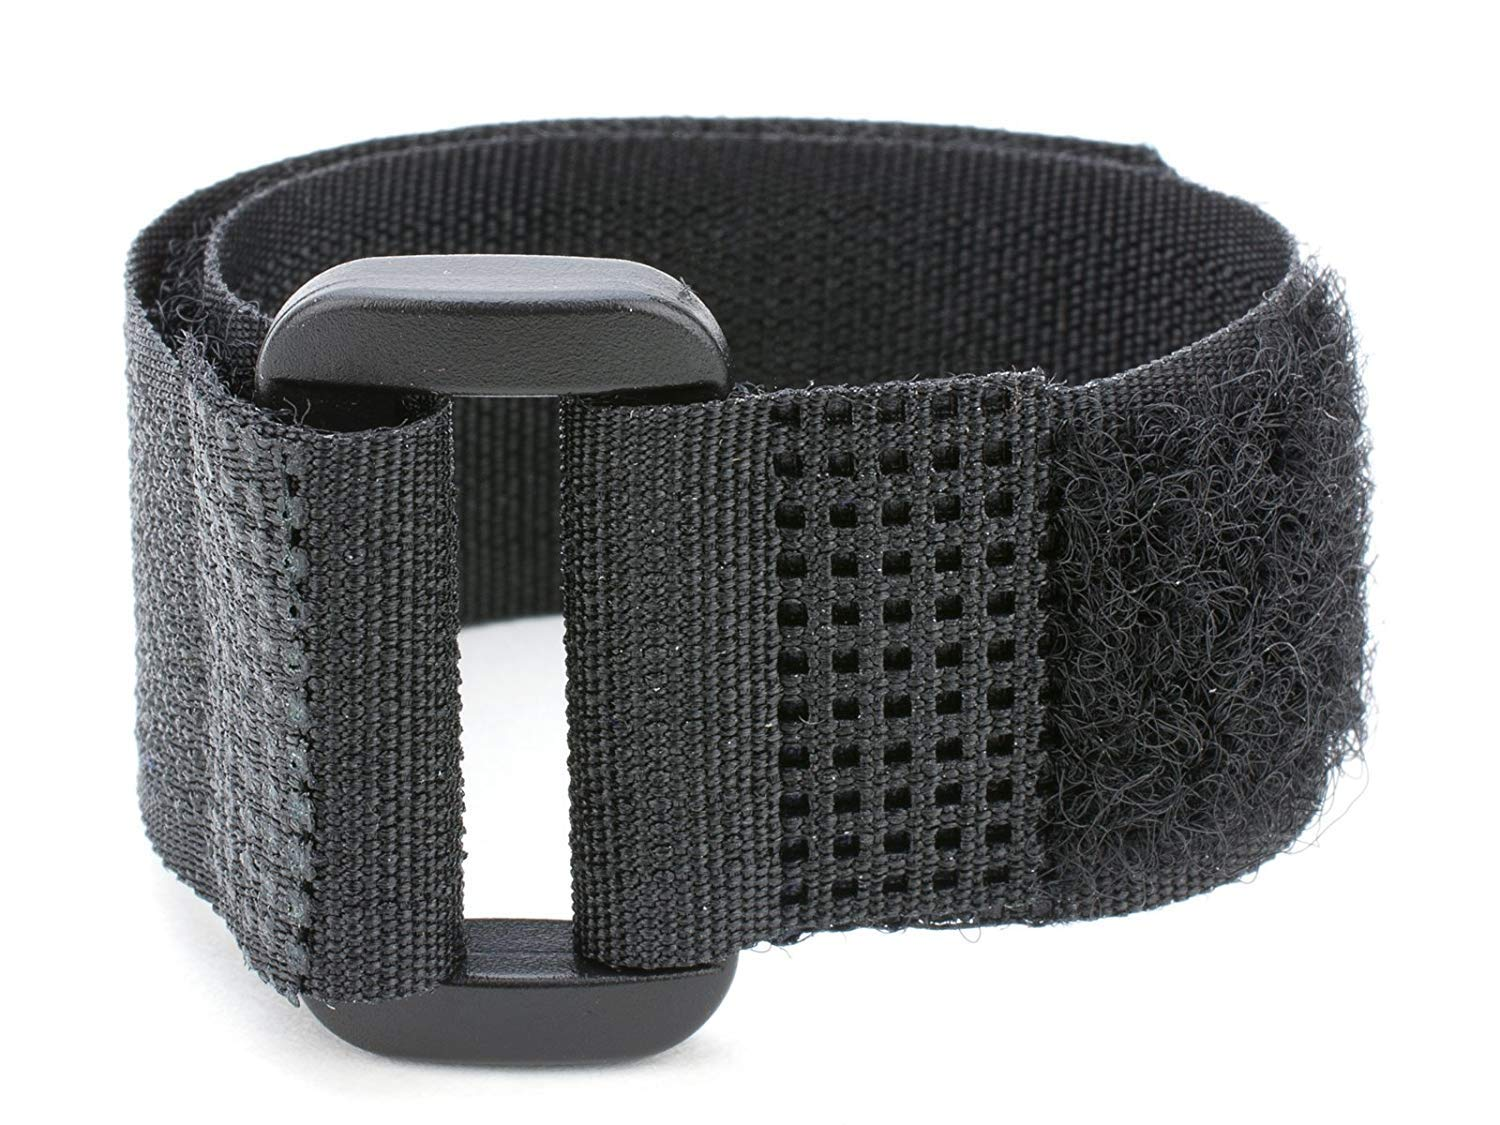 Hook and Loop Straps, Reusable Cinch Straps 1'' x 16'' Pack of 10 by Gadget Beyond